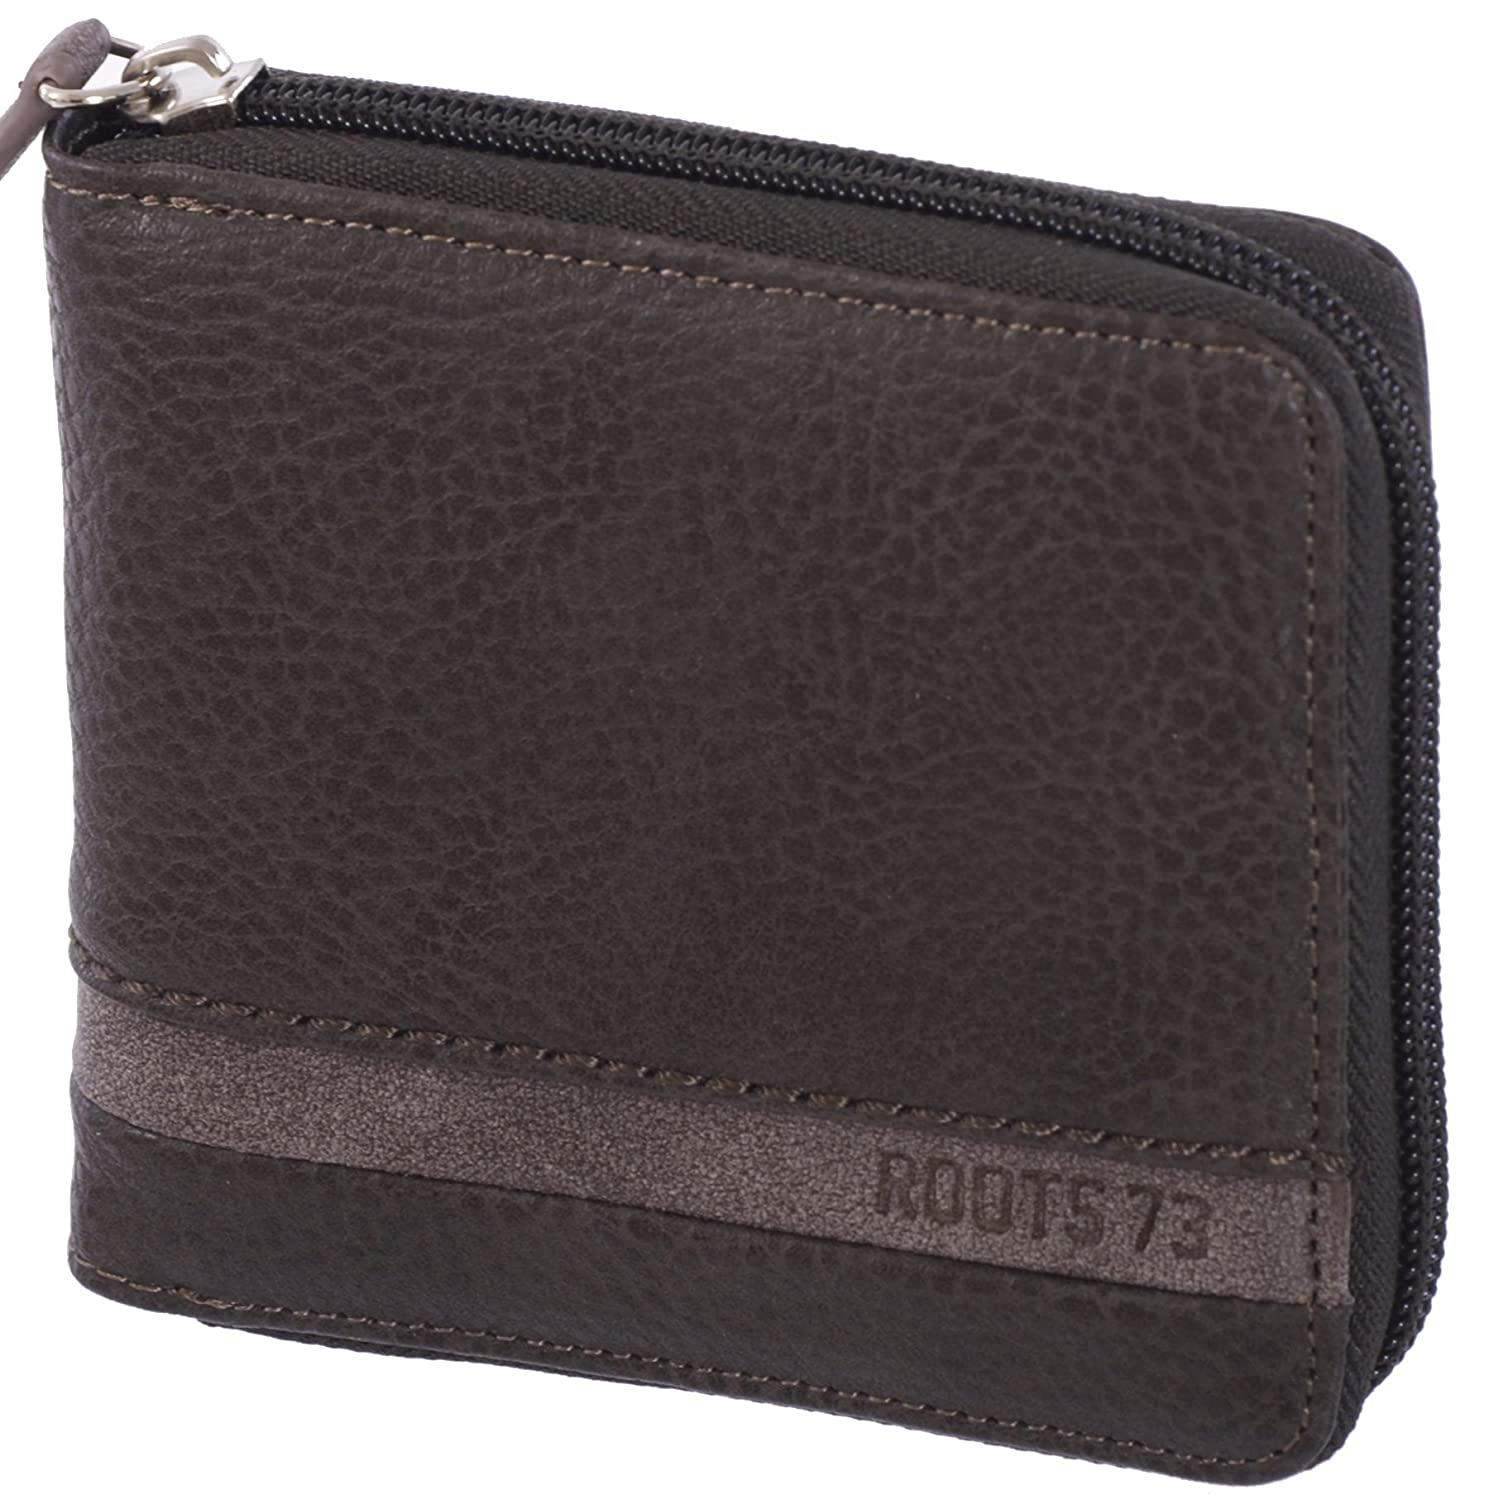 Roots 73 Men's Zip Around Trifold RFID Protected ID Wallet Black CBMC_RT221300_CW_BLK